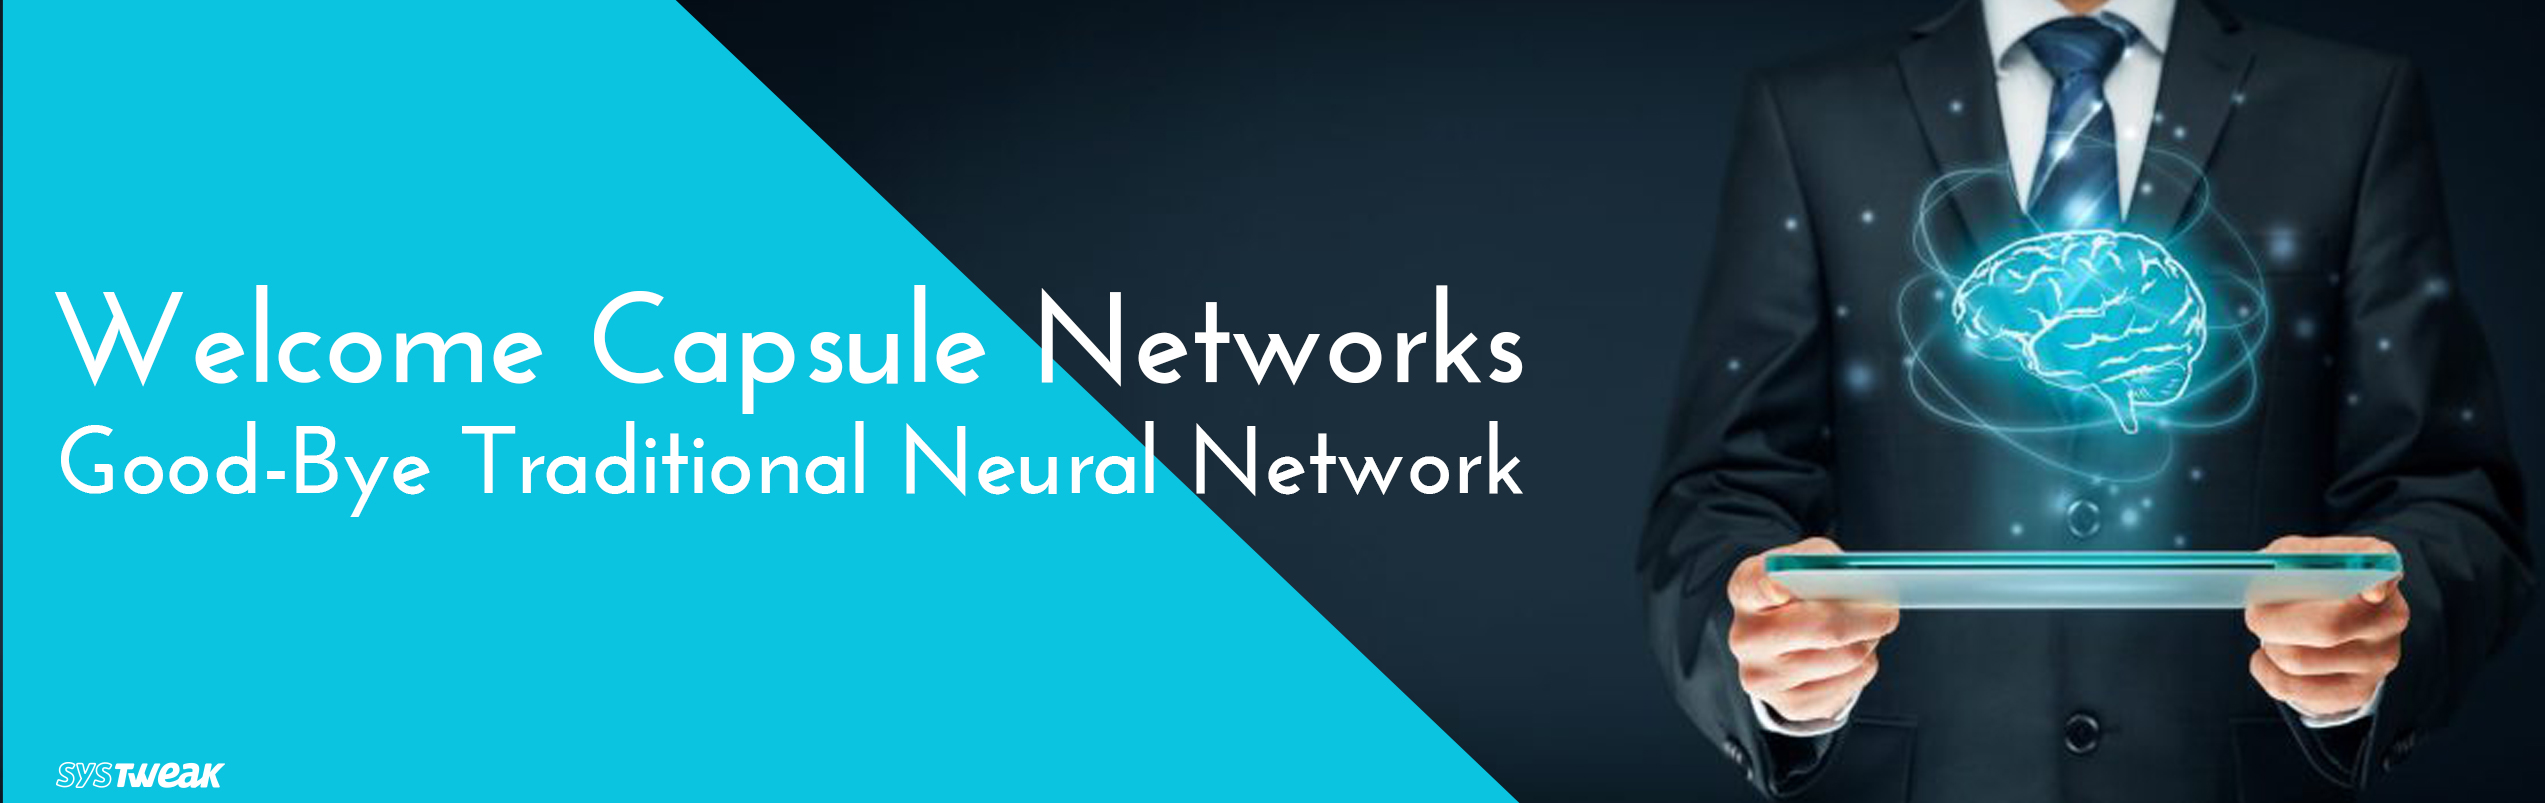 Will Capsule Networks Replace Traditional Neural Networks?